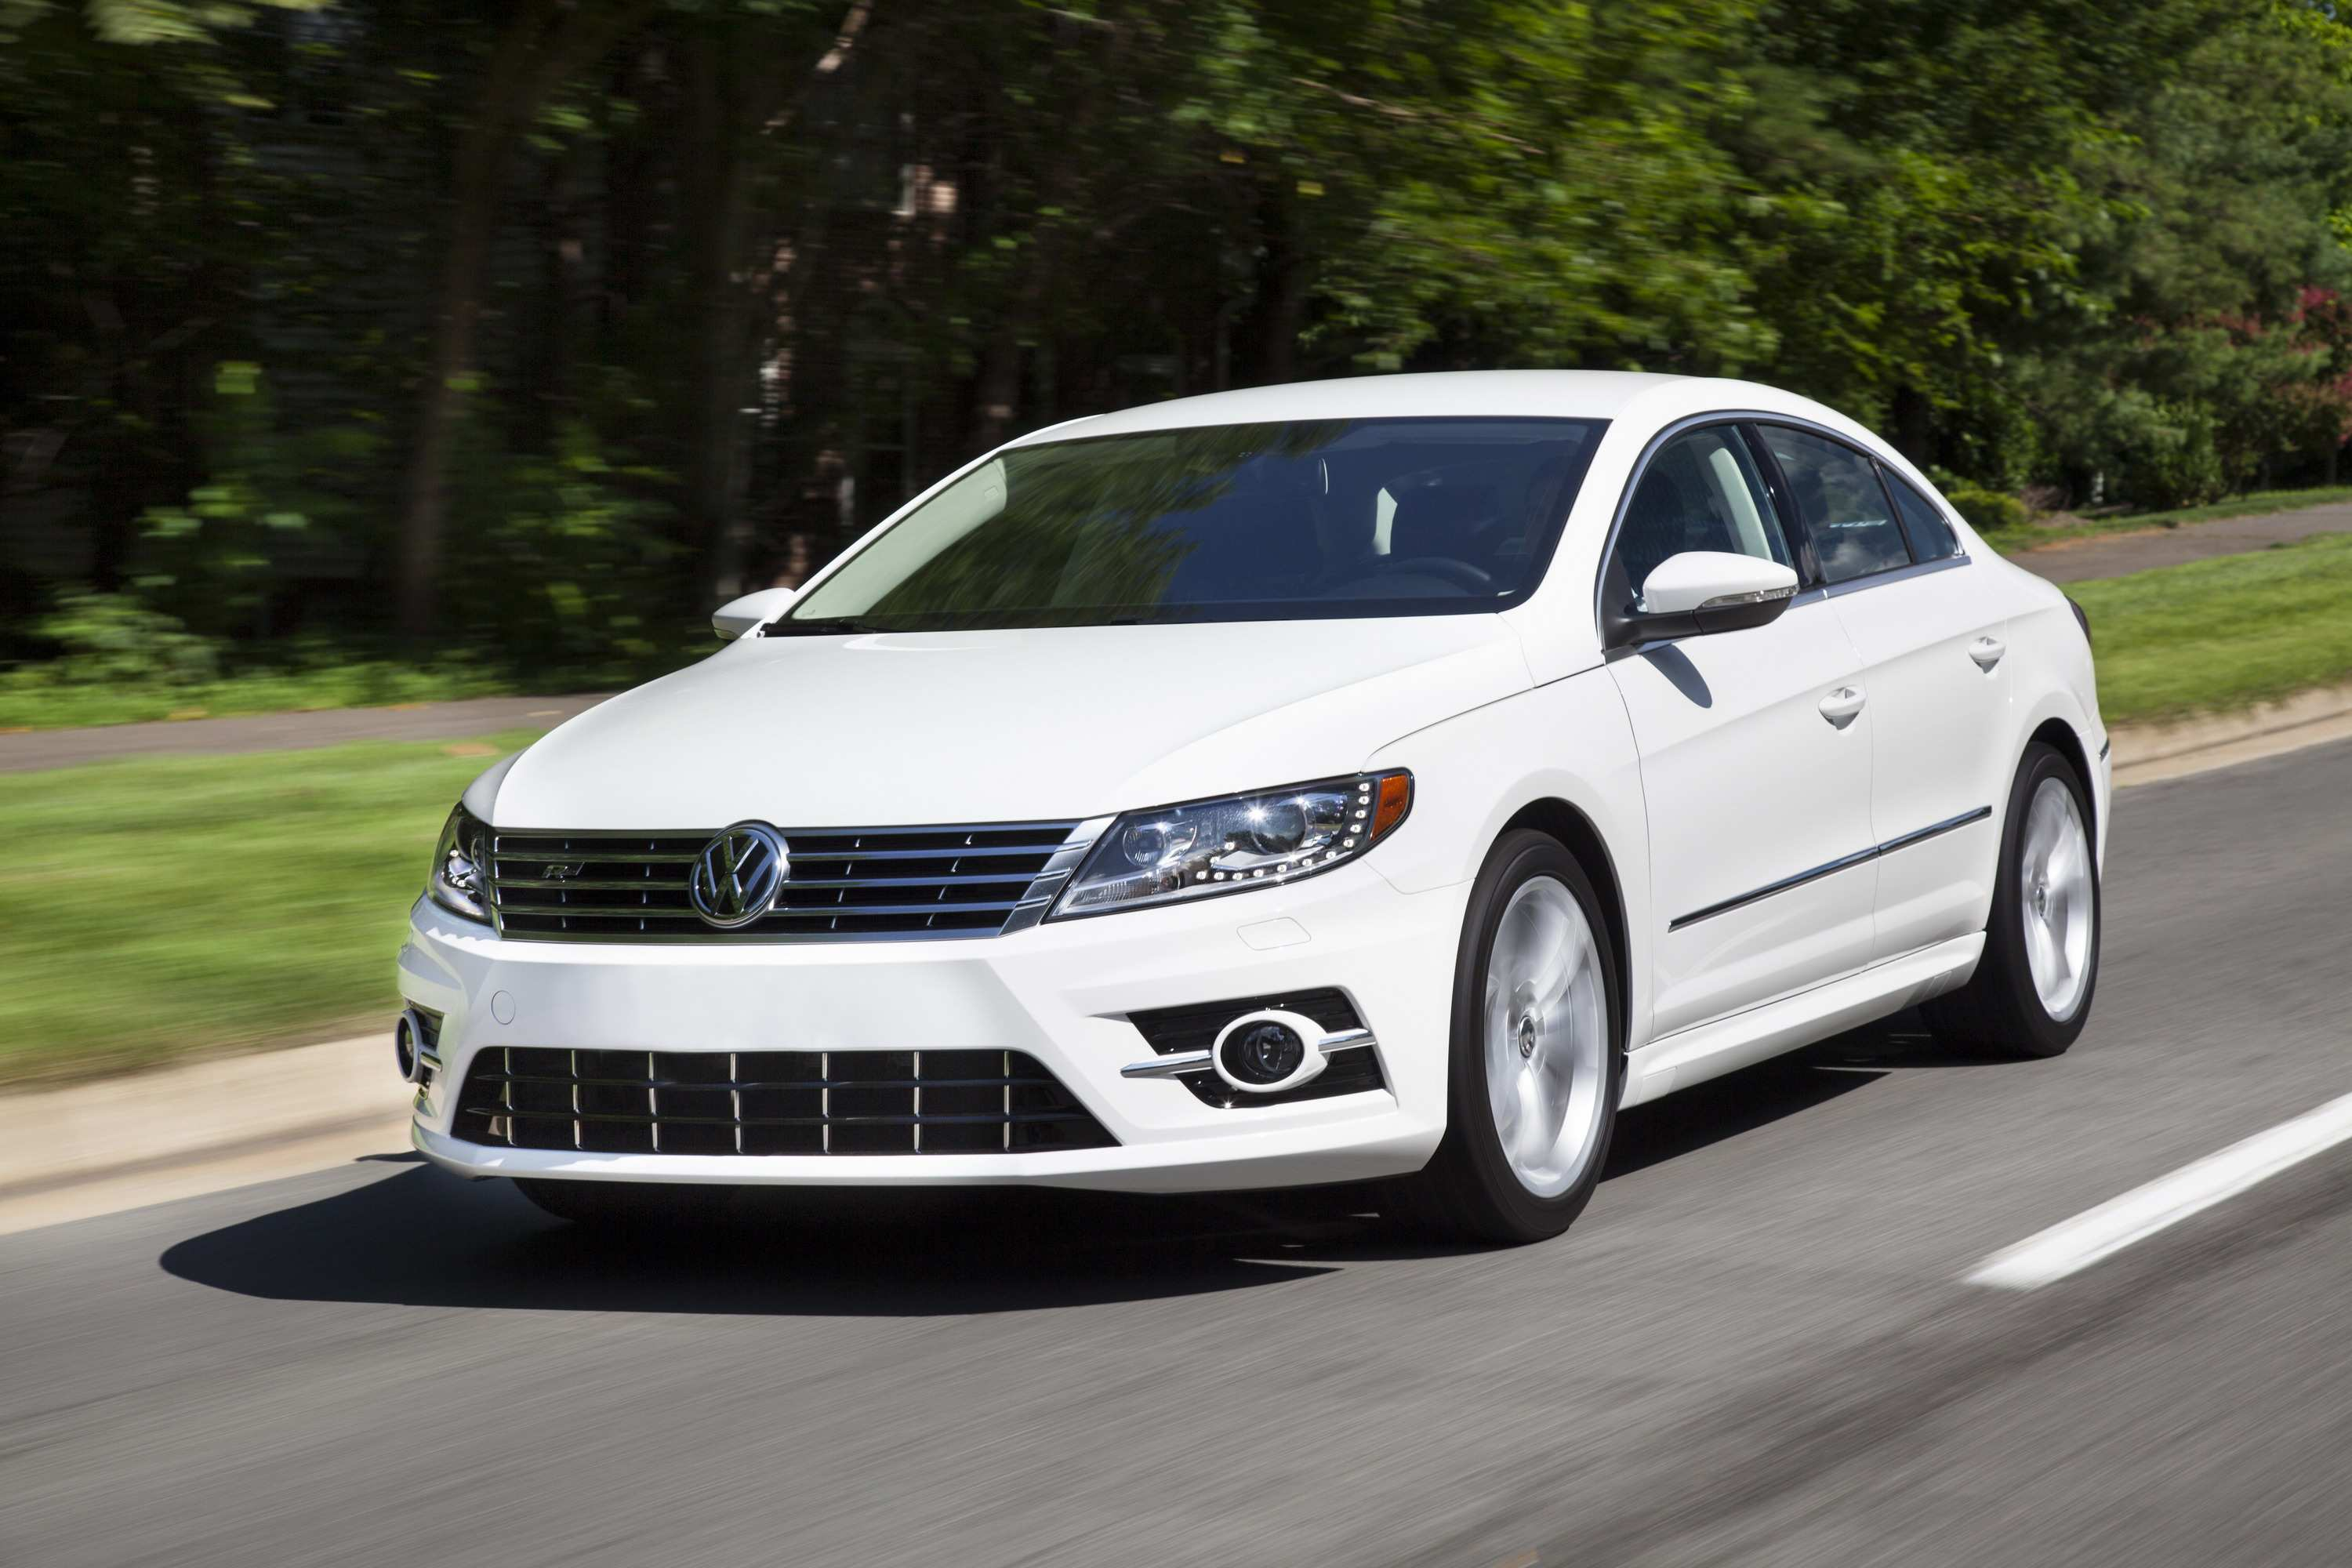 64 Gallery of Vw Cc Redesign Price for Vw Cc Redesign